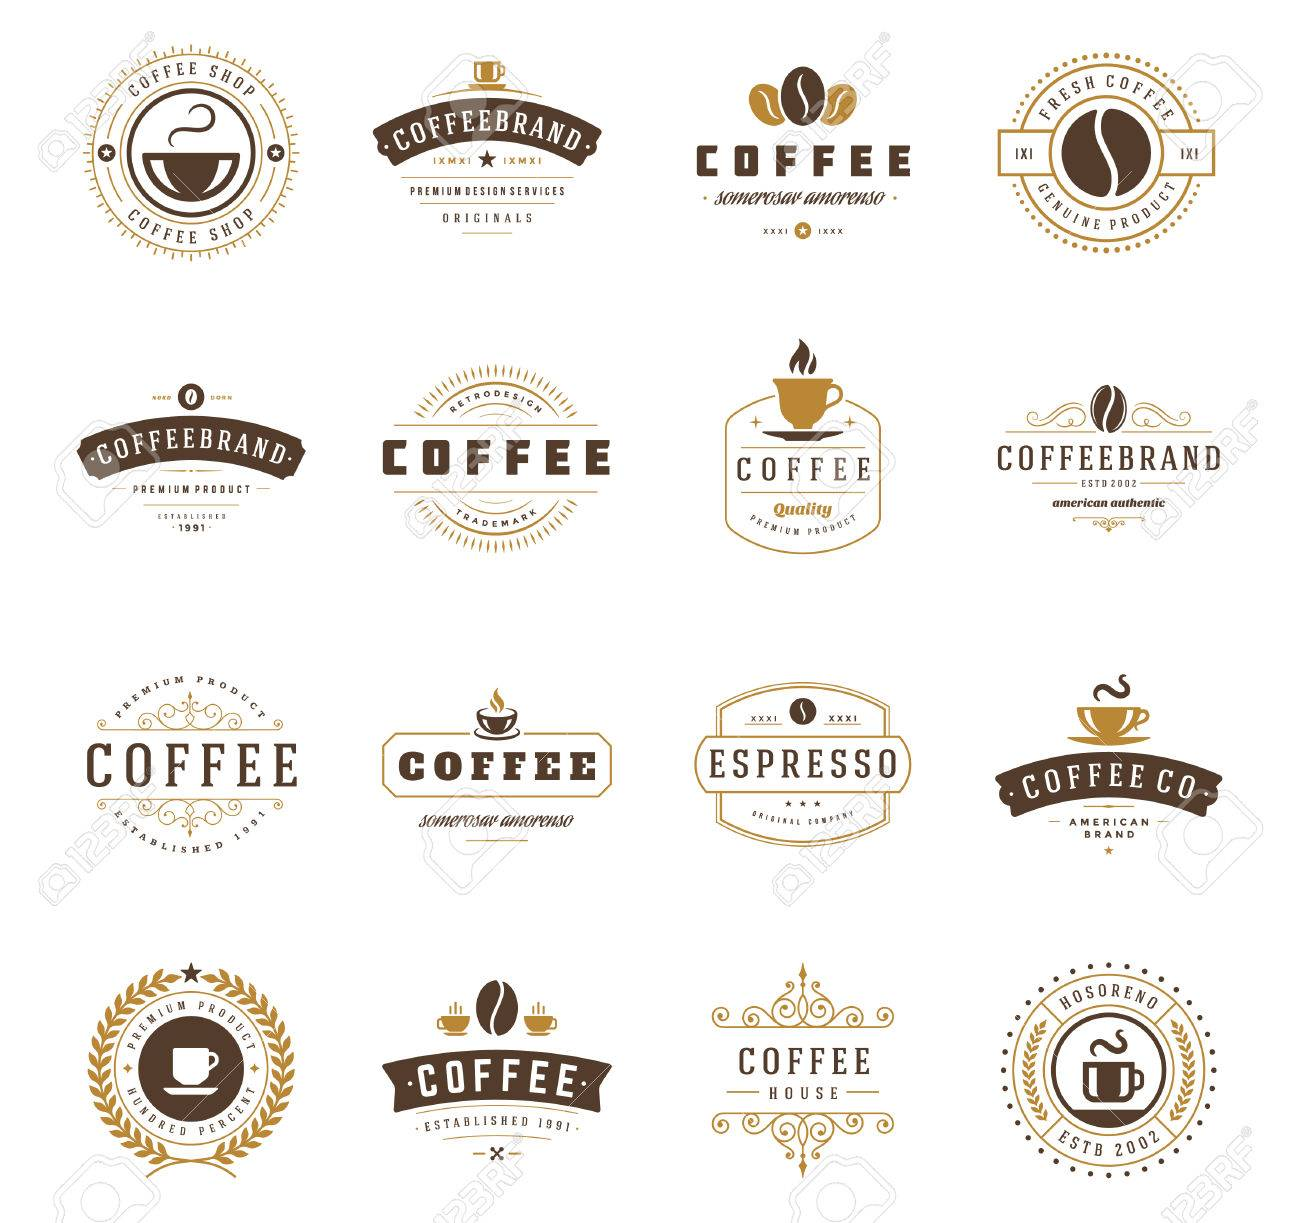 Coffee Shop Logos, Badges and Labels Design Elements set. Cup, beans, cafe vintage style objects retro vector illustration. - 48325026